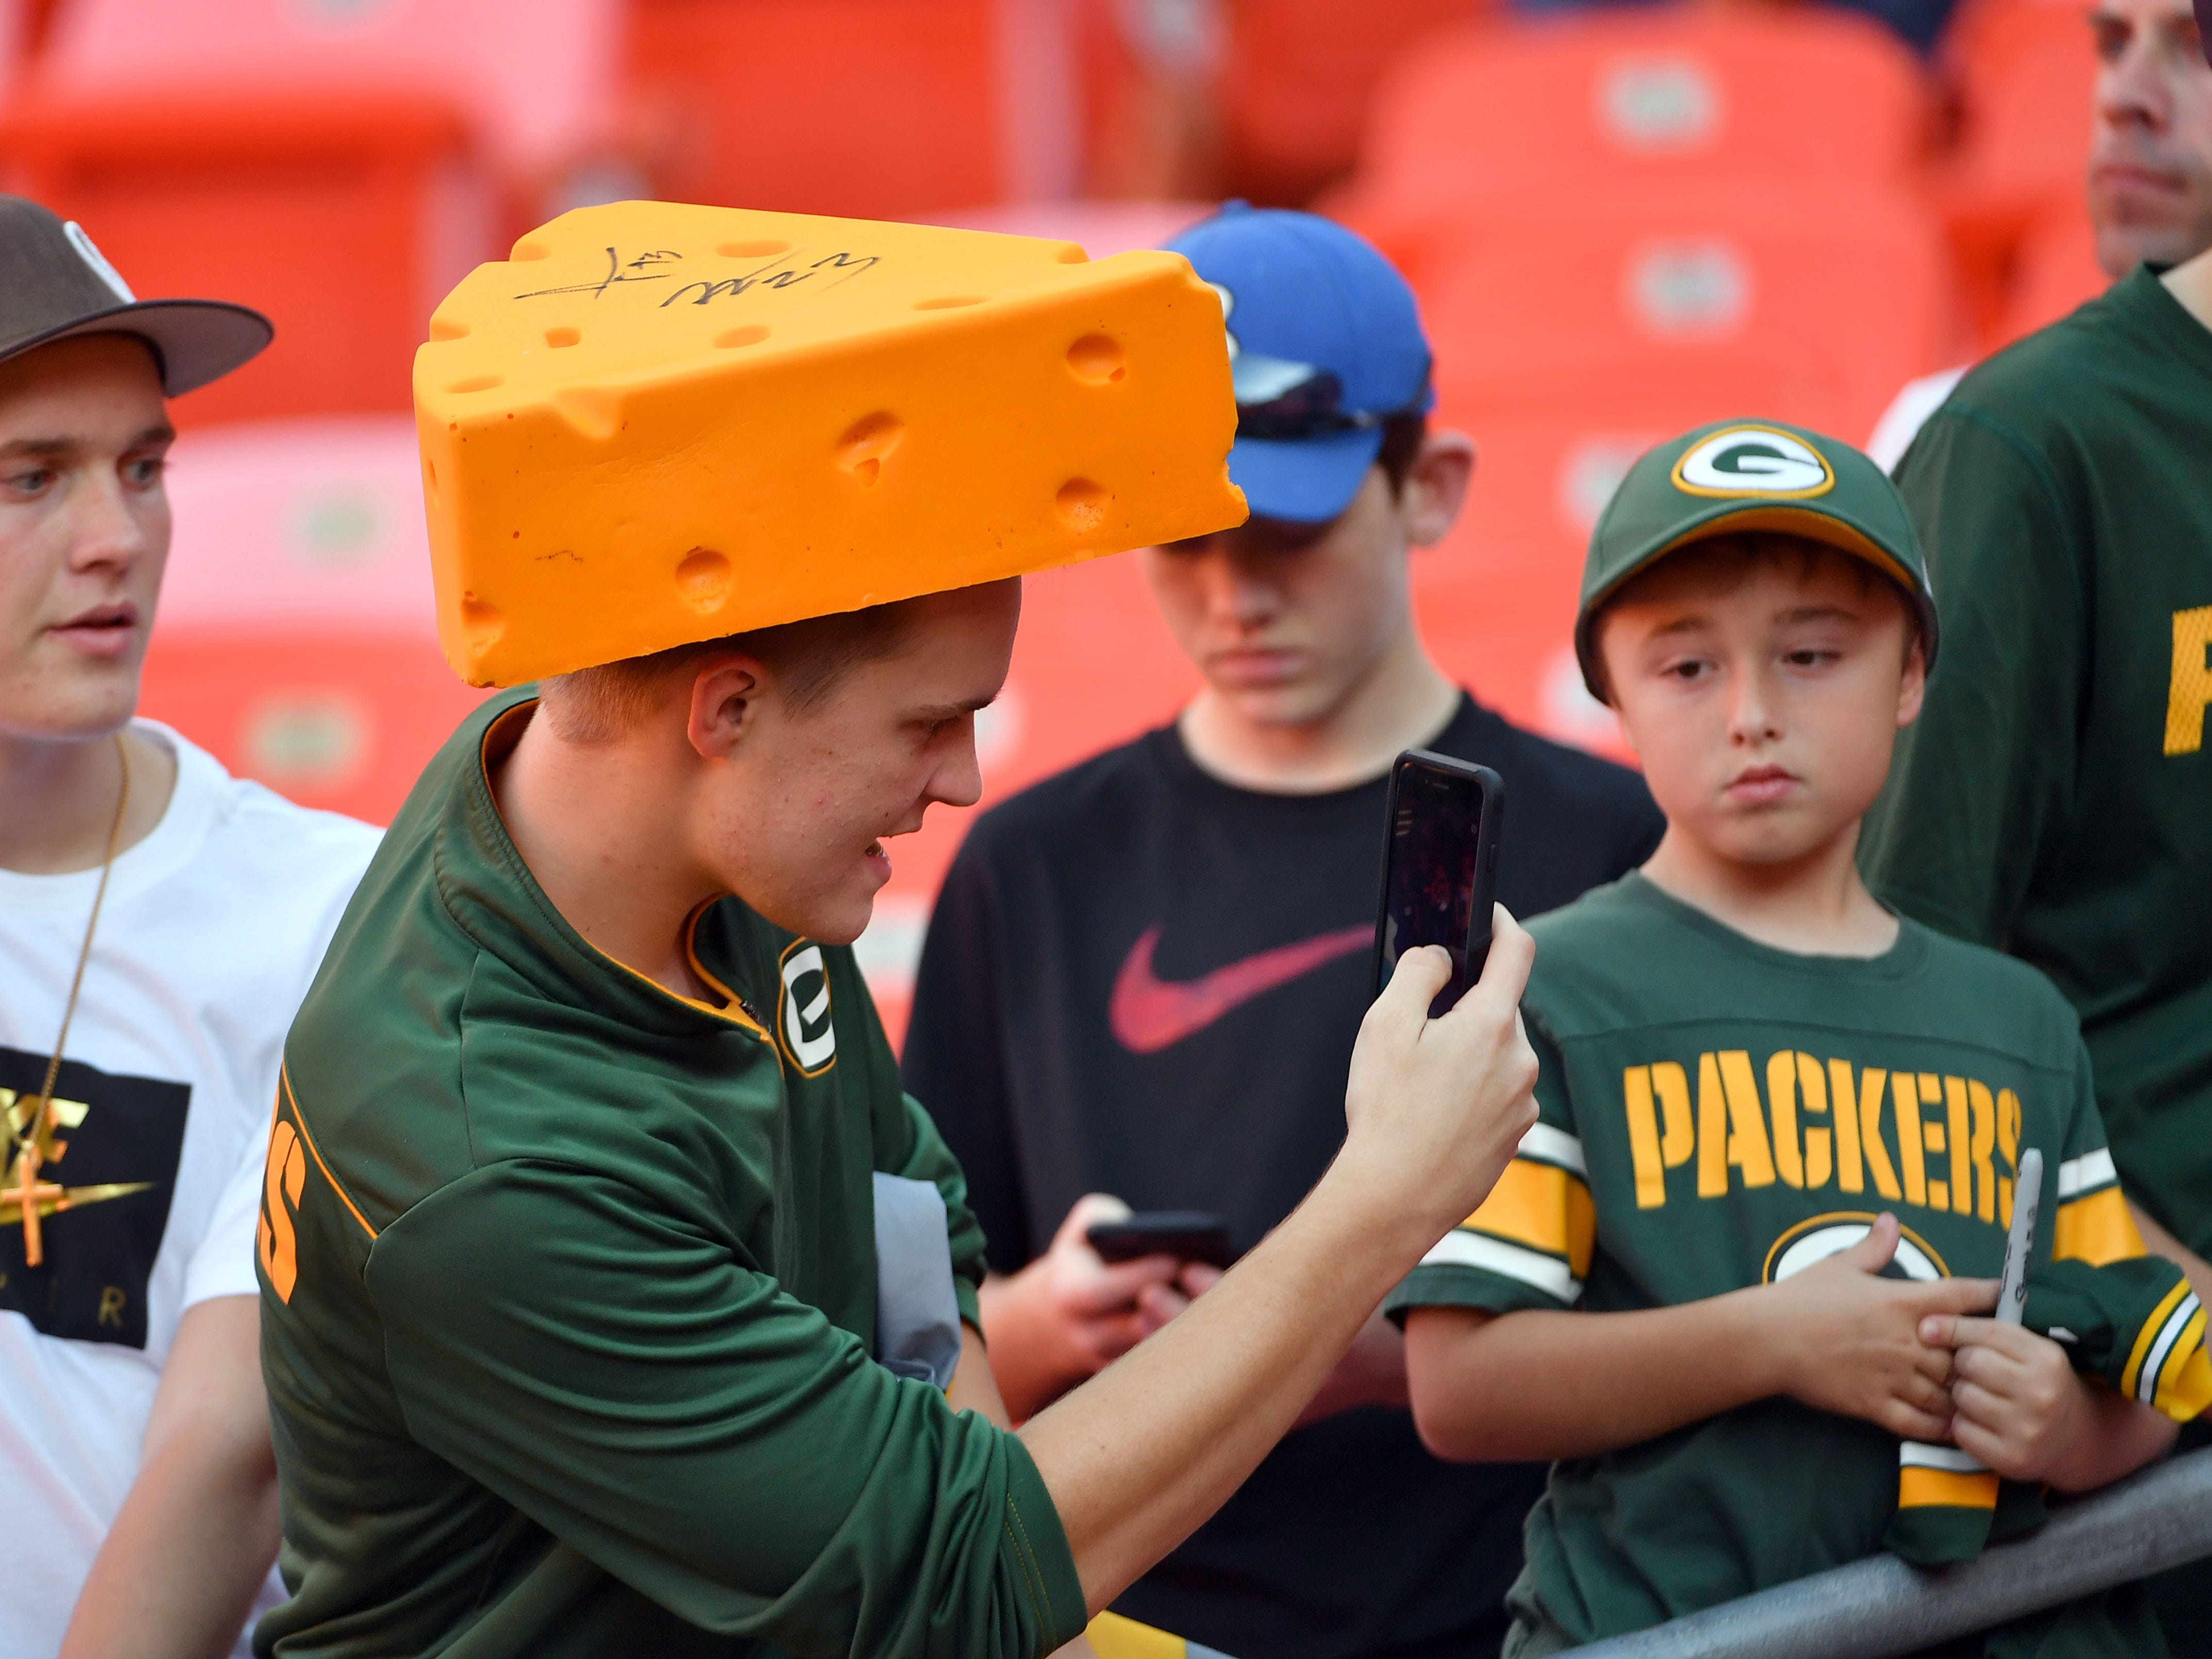 Aug 30, 2018; Kansas City, MO, USA; Green Bay Packers fans take selfies before the game against the Kansas City Chiefs at Arrowhead Stadium.